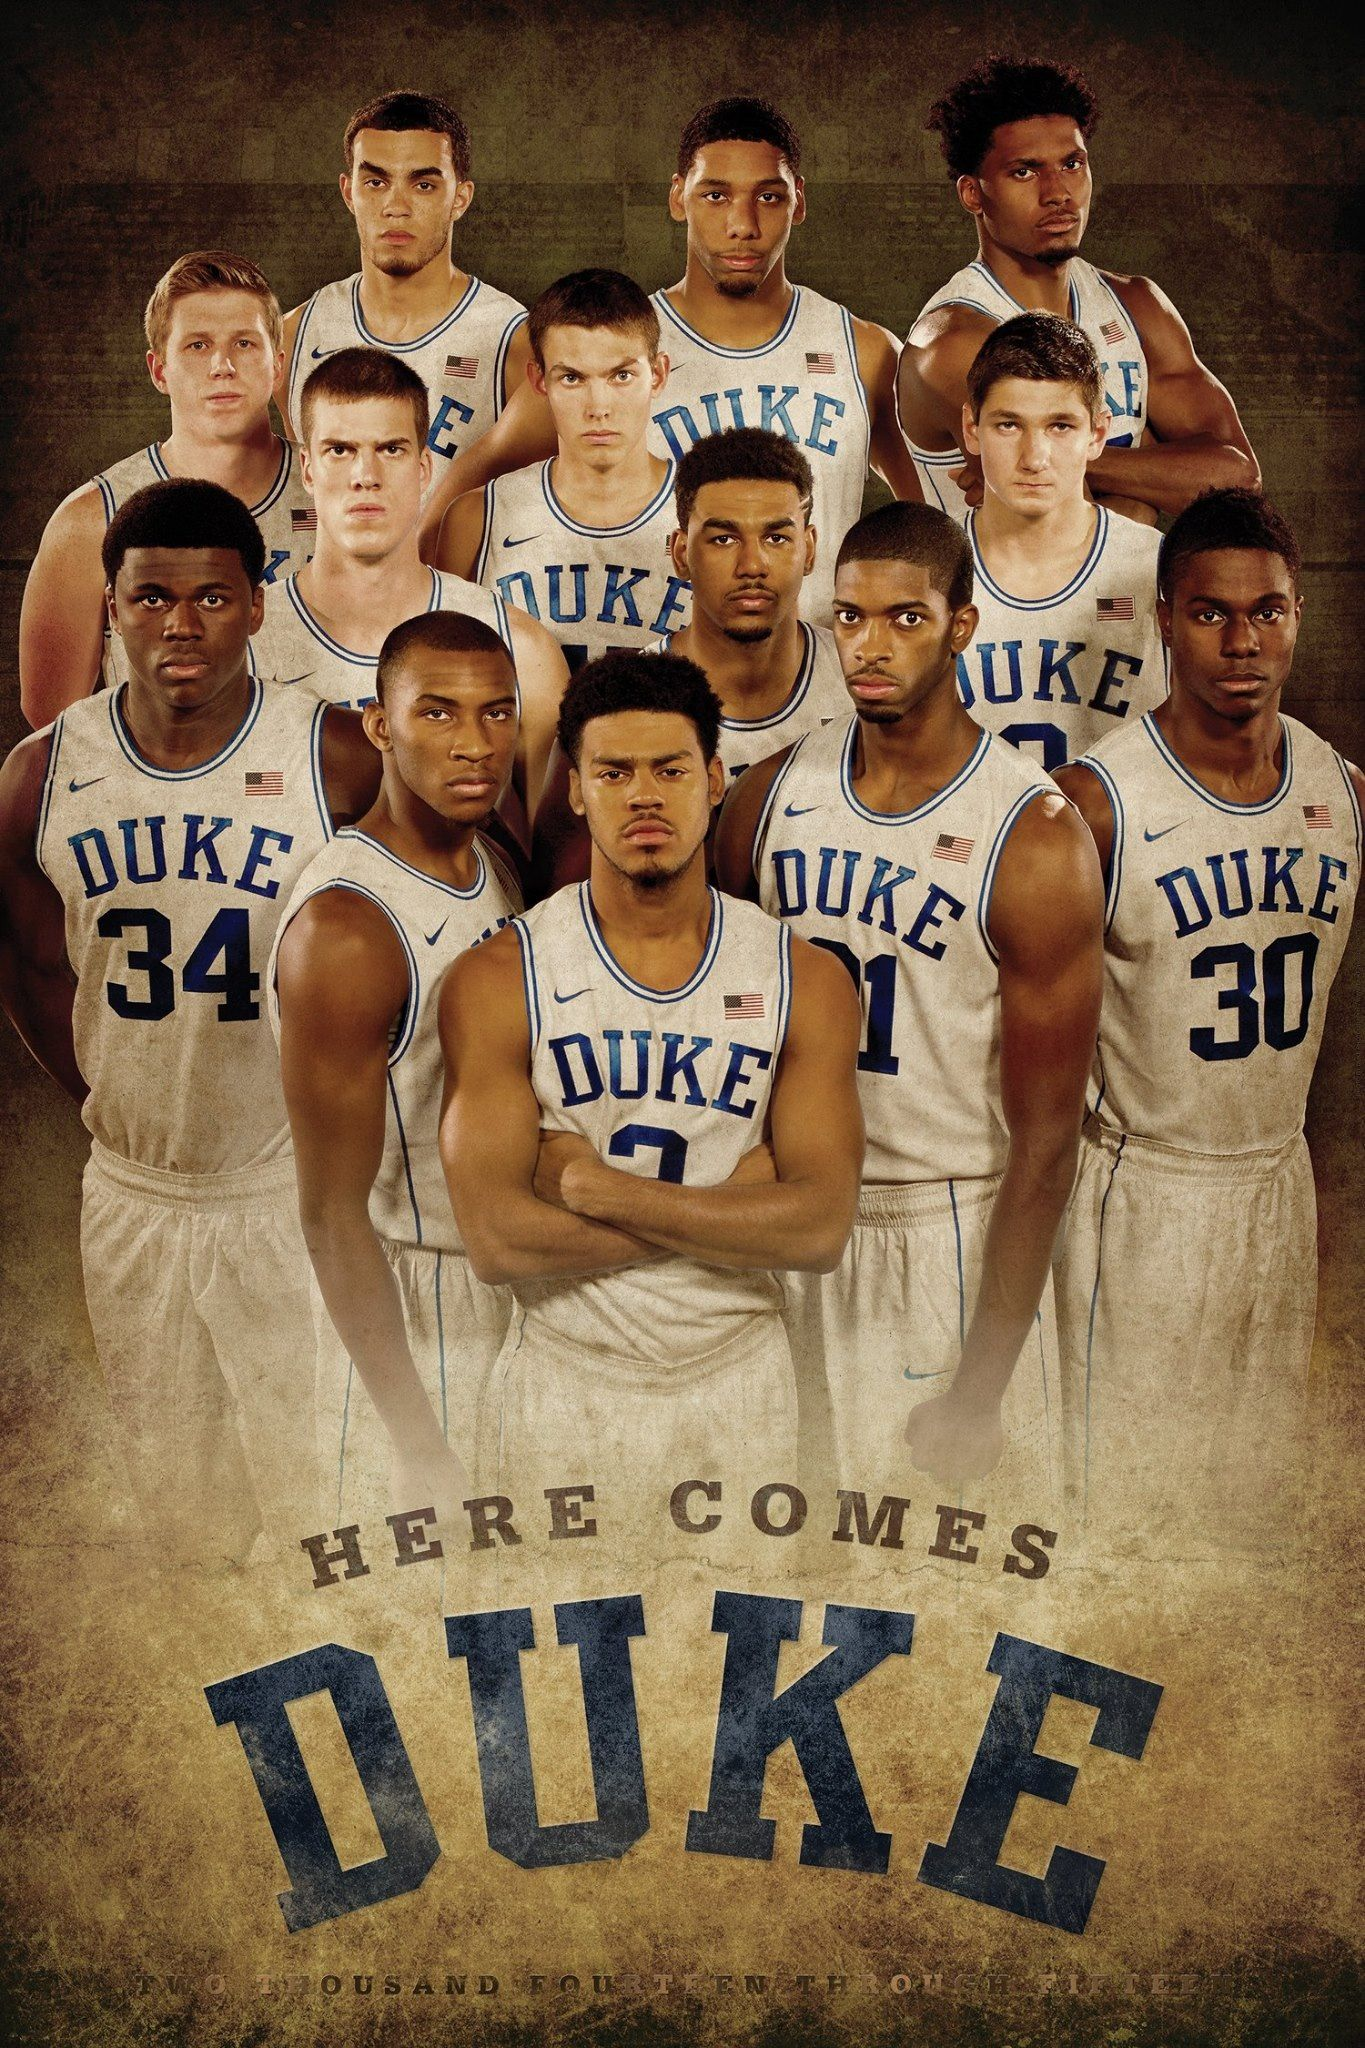 All My Boys In Blue With Bae Front And Center 2 3quinn 2014 15 Duke Basketball Basketball Team Pictures Duke Basketball Team Pictures